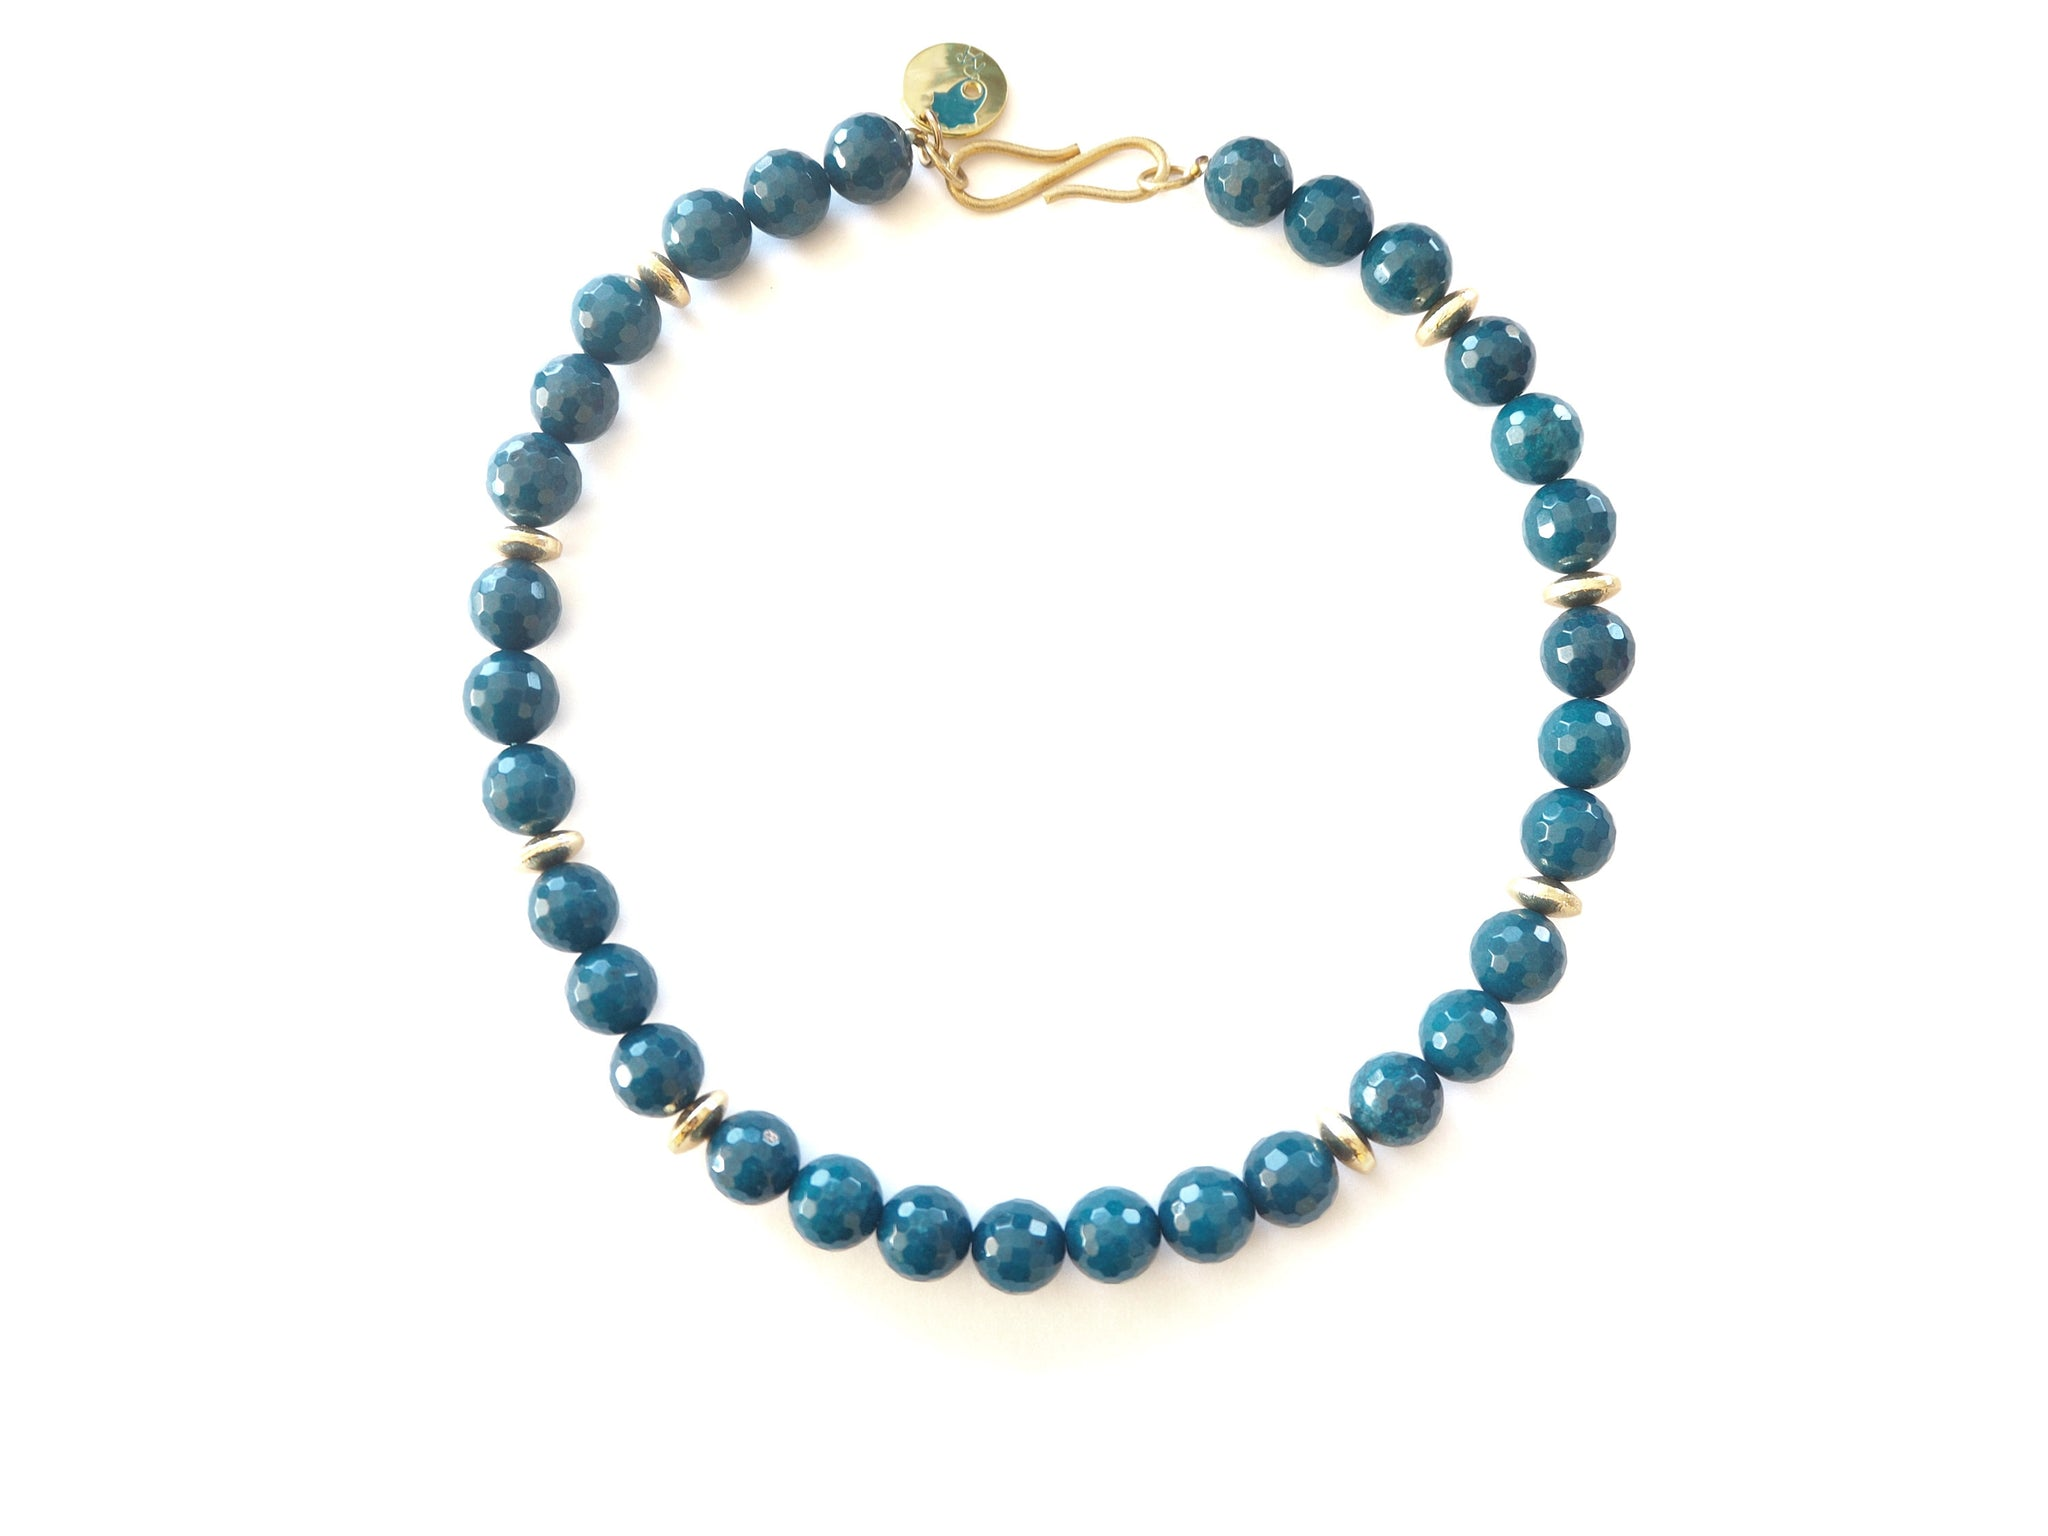 Agate - blue agate necklace with goldplated spacers